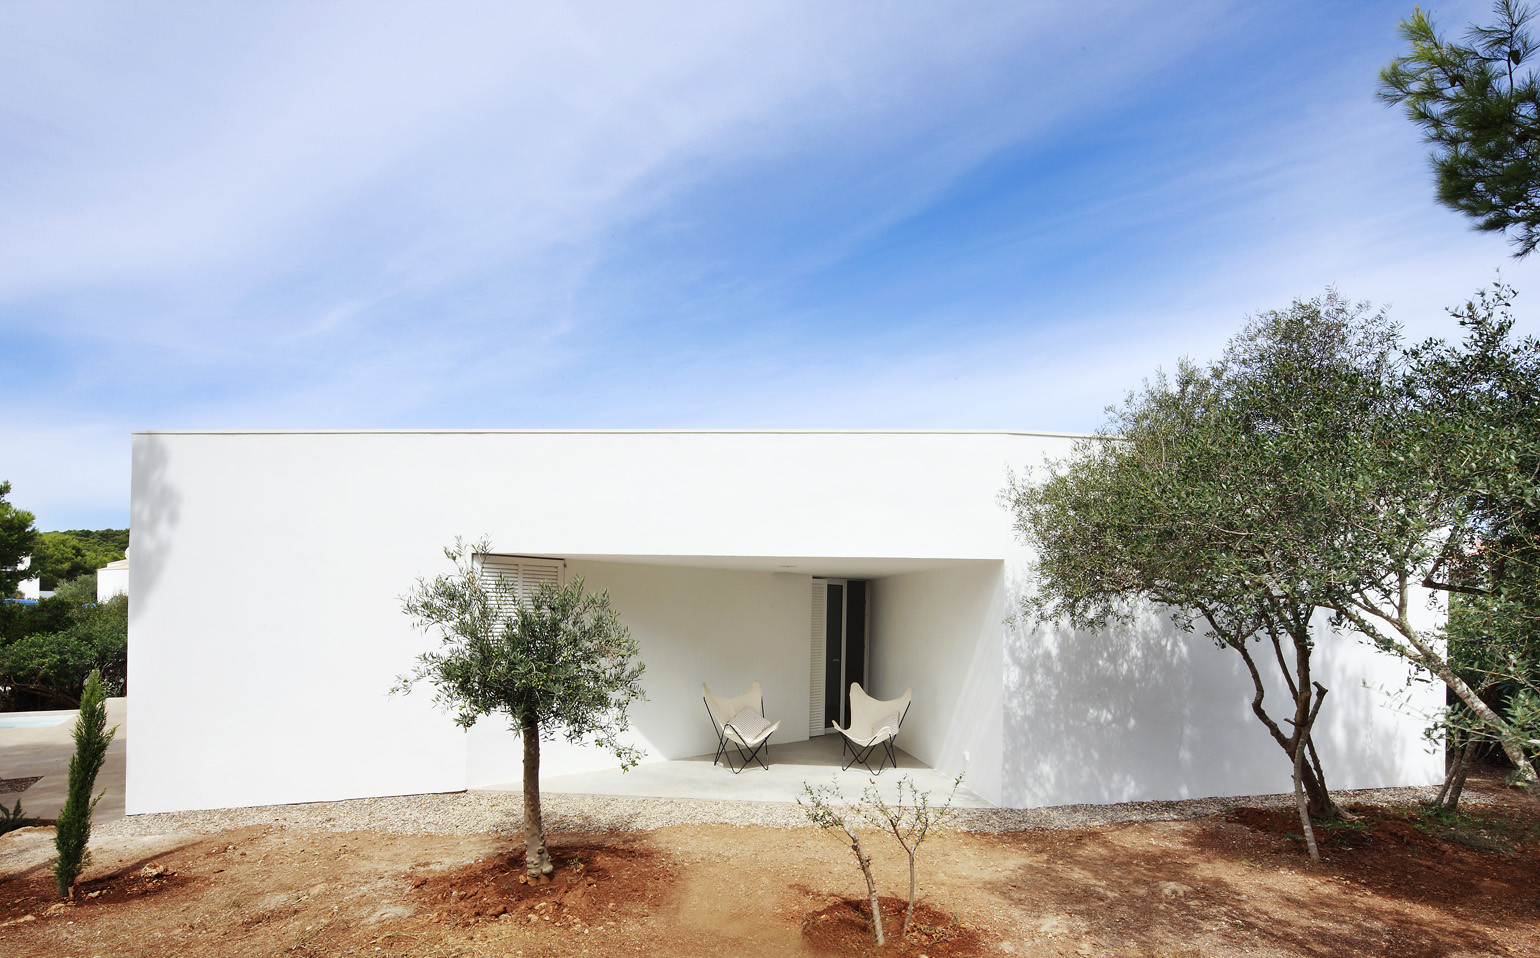 4 Porches and 4 Skylights House / Ferran Vizoso + Jesús Cardona